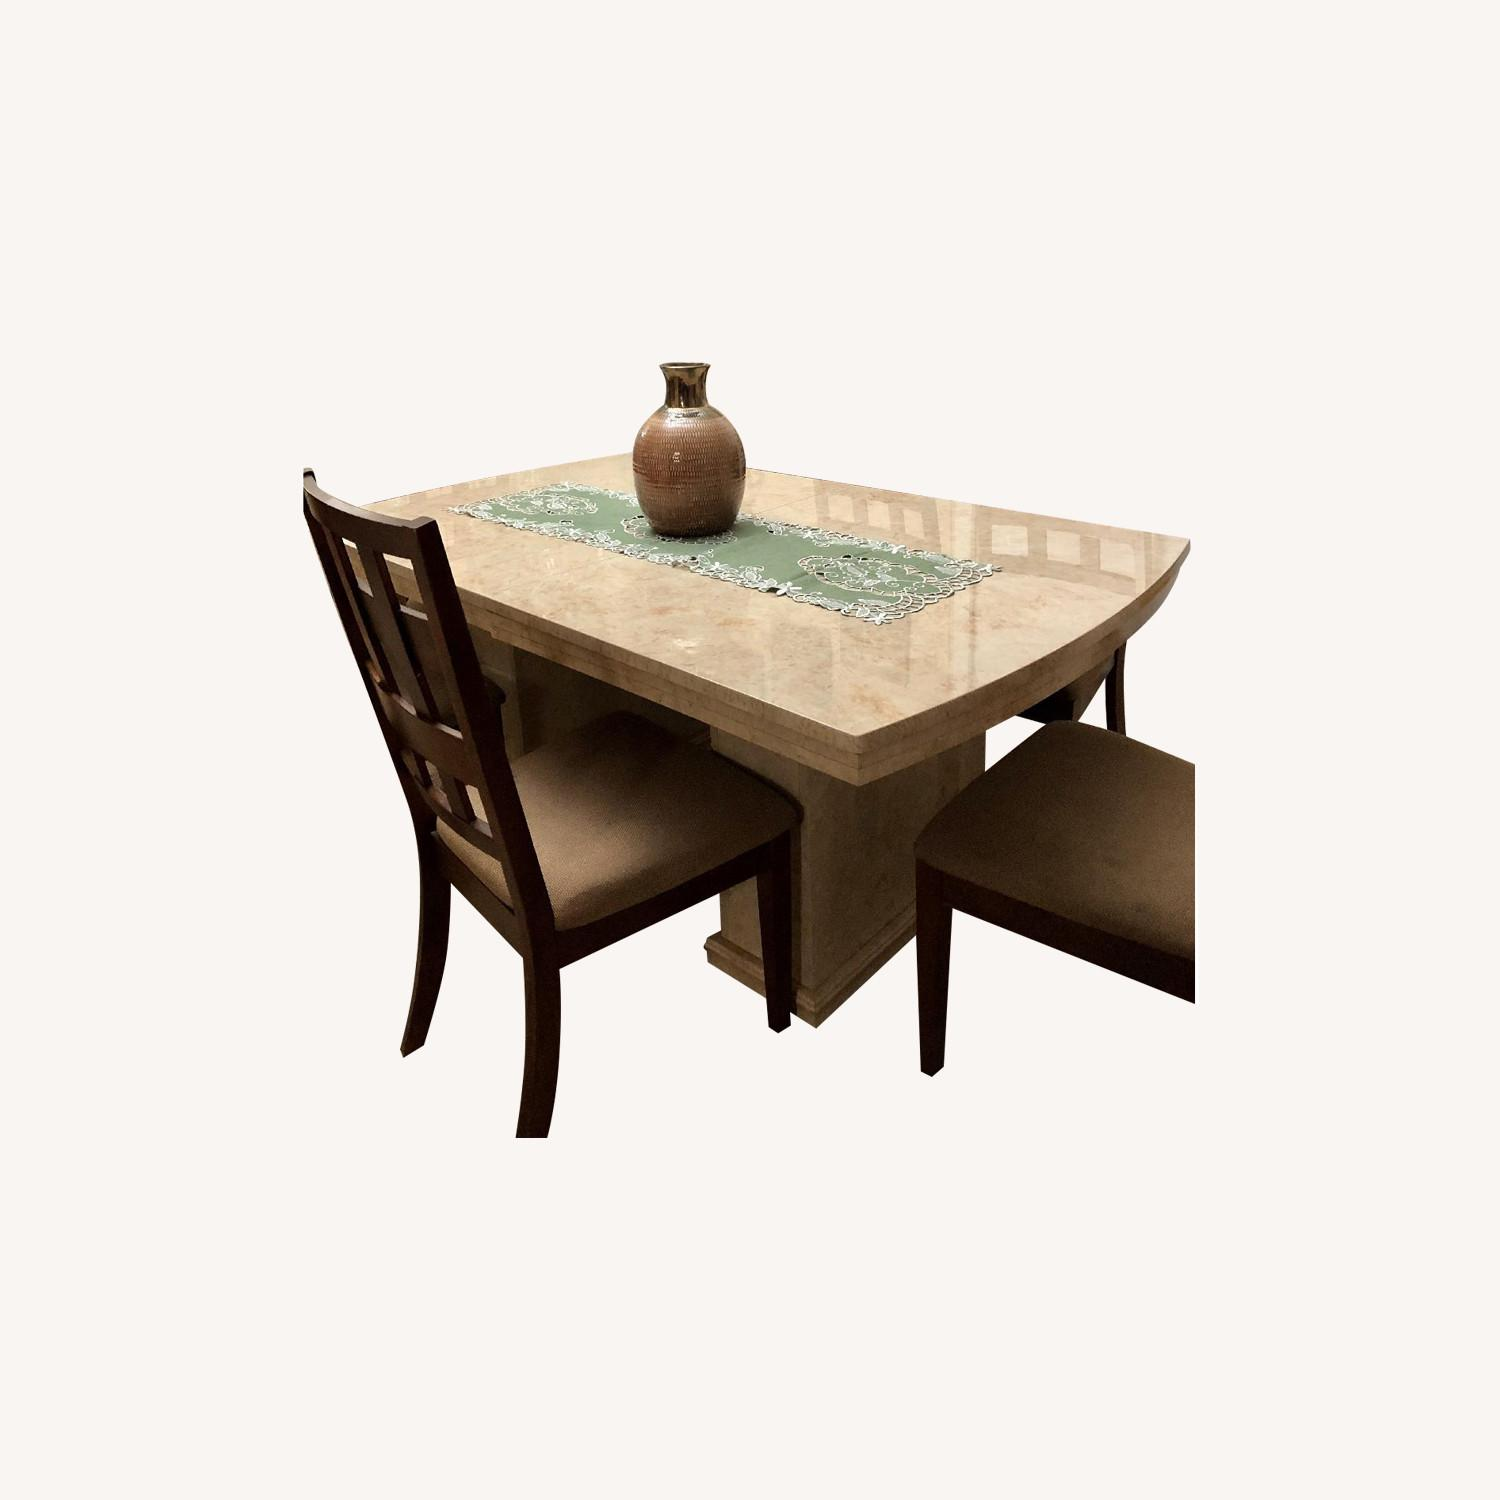 Seaman's Furniture Natural Italian Lacquer Dining Table - image-0